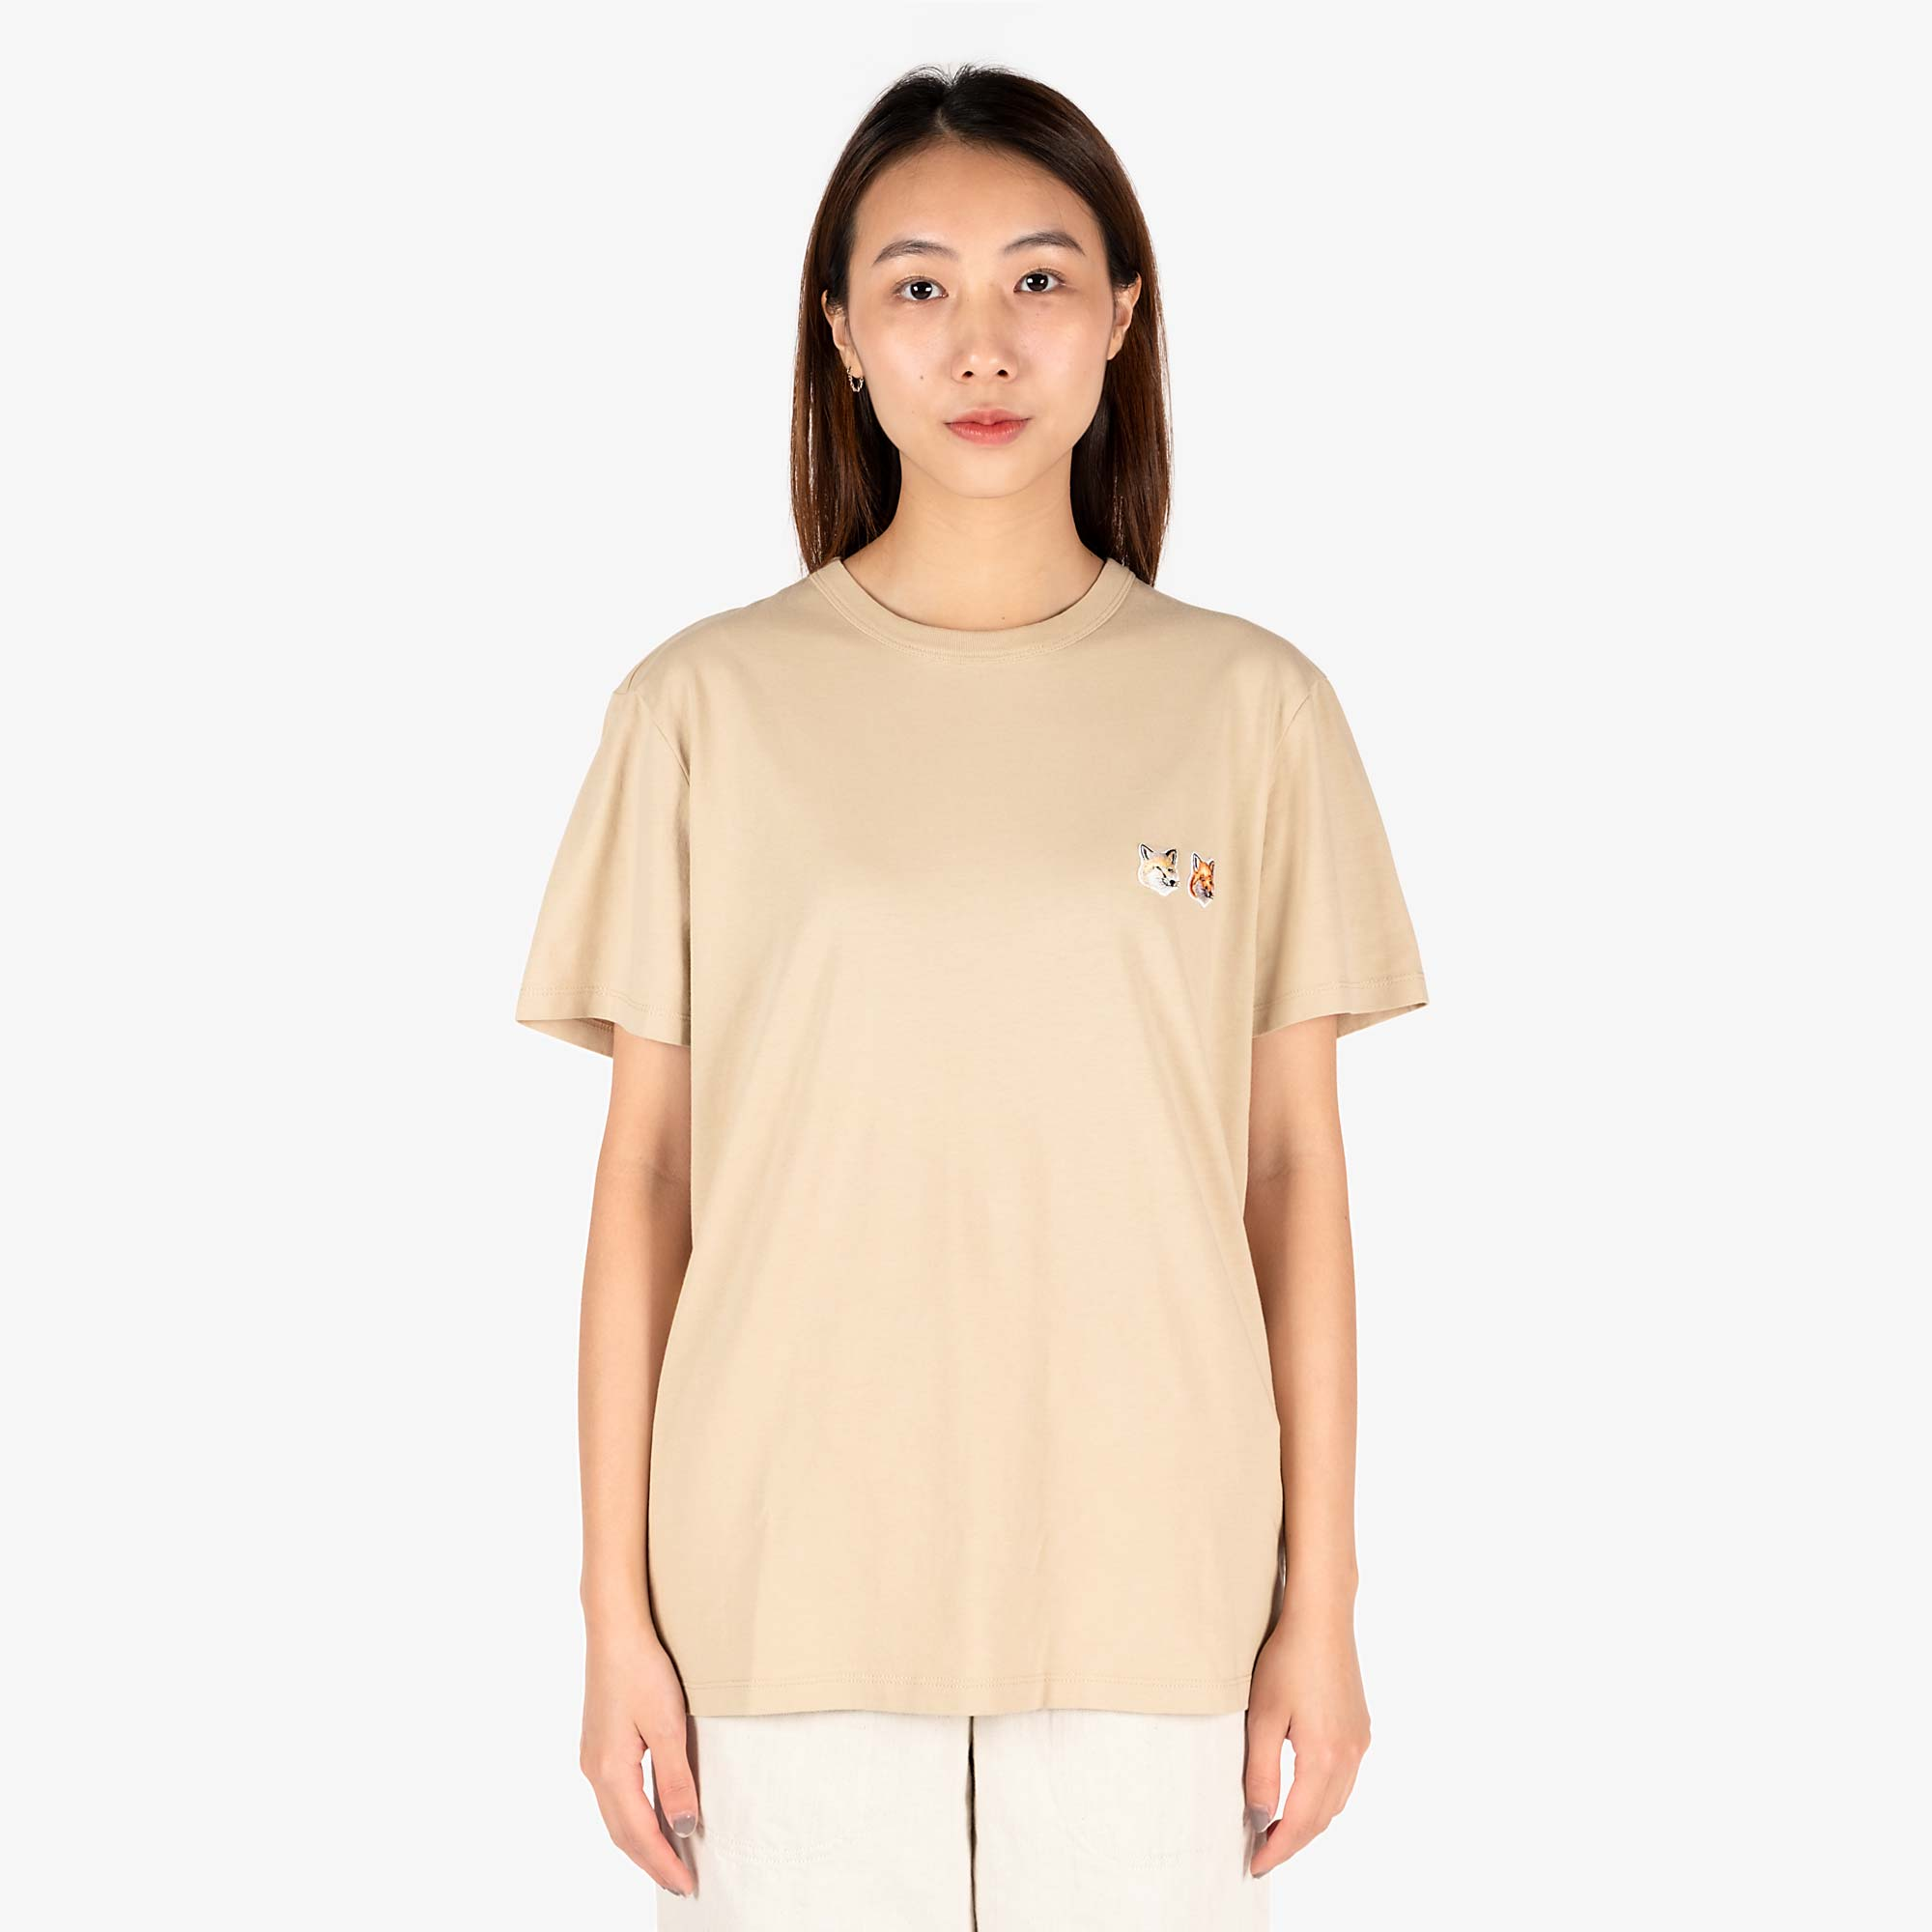 Maison Kitsune Womens Double Fox Head Patch T-Shirt - Beige 1